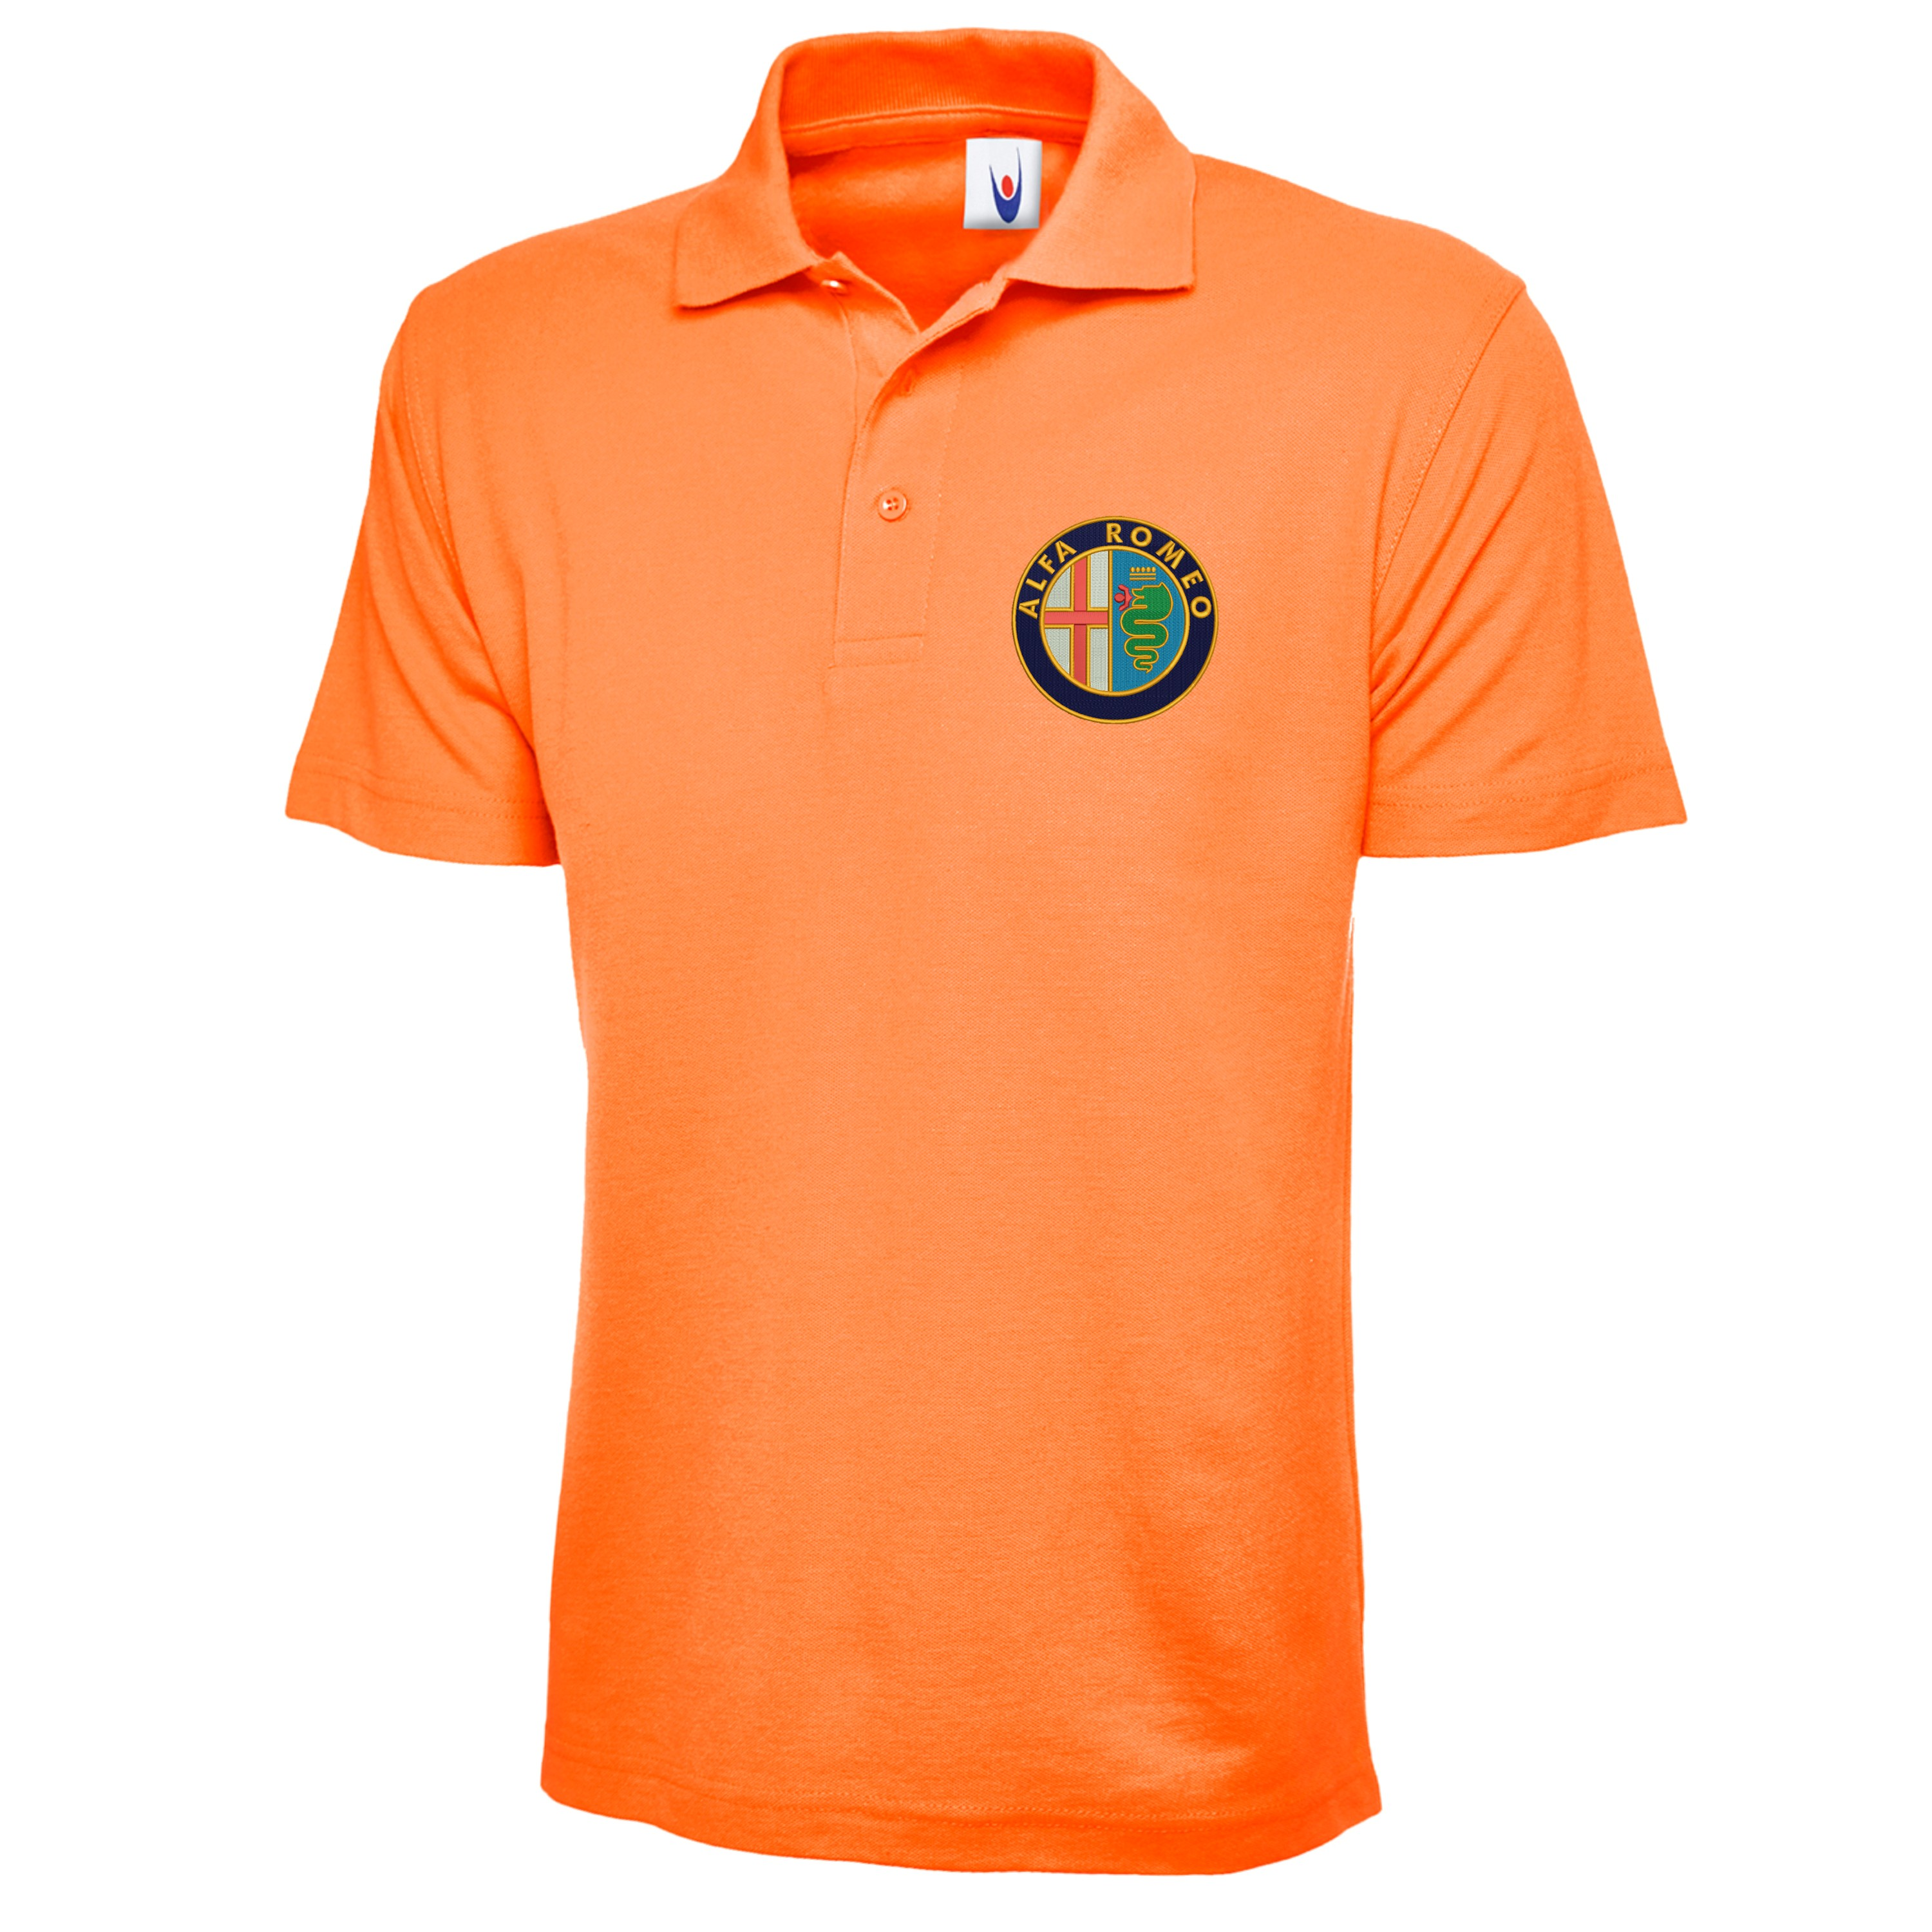 Himalayan Zephyr Mens Breathable Polyester Dri Fit Work T-Shirt Sport Polo Shirt